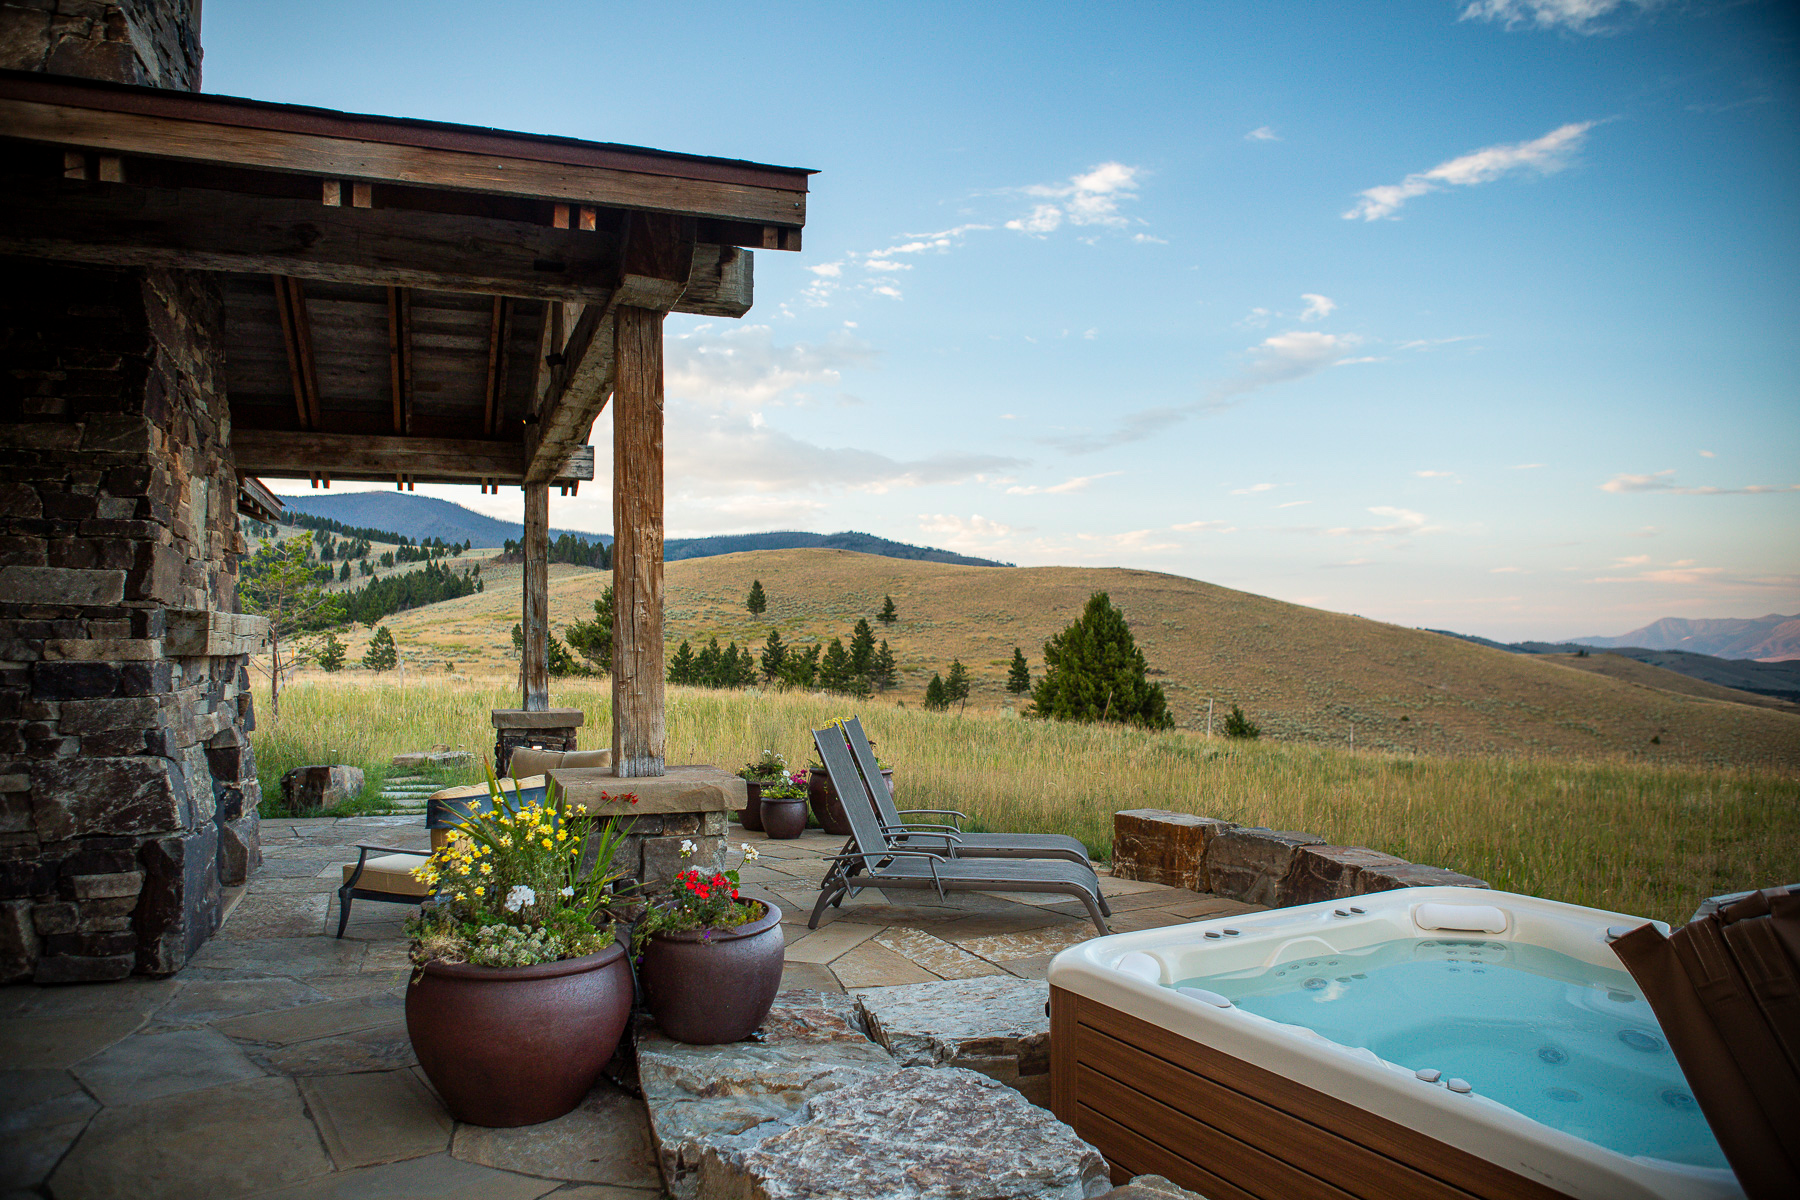 How to: Landscaping around a hot tub